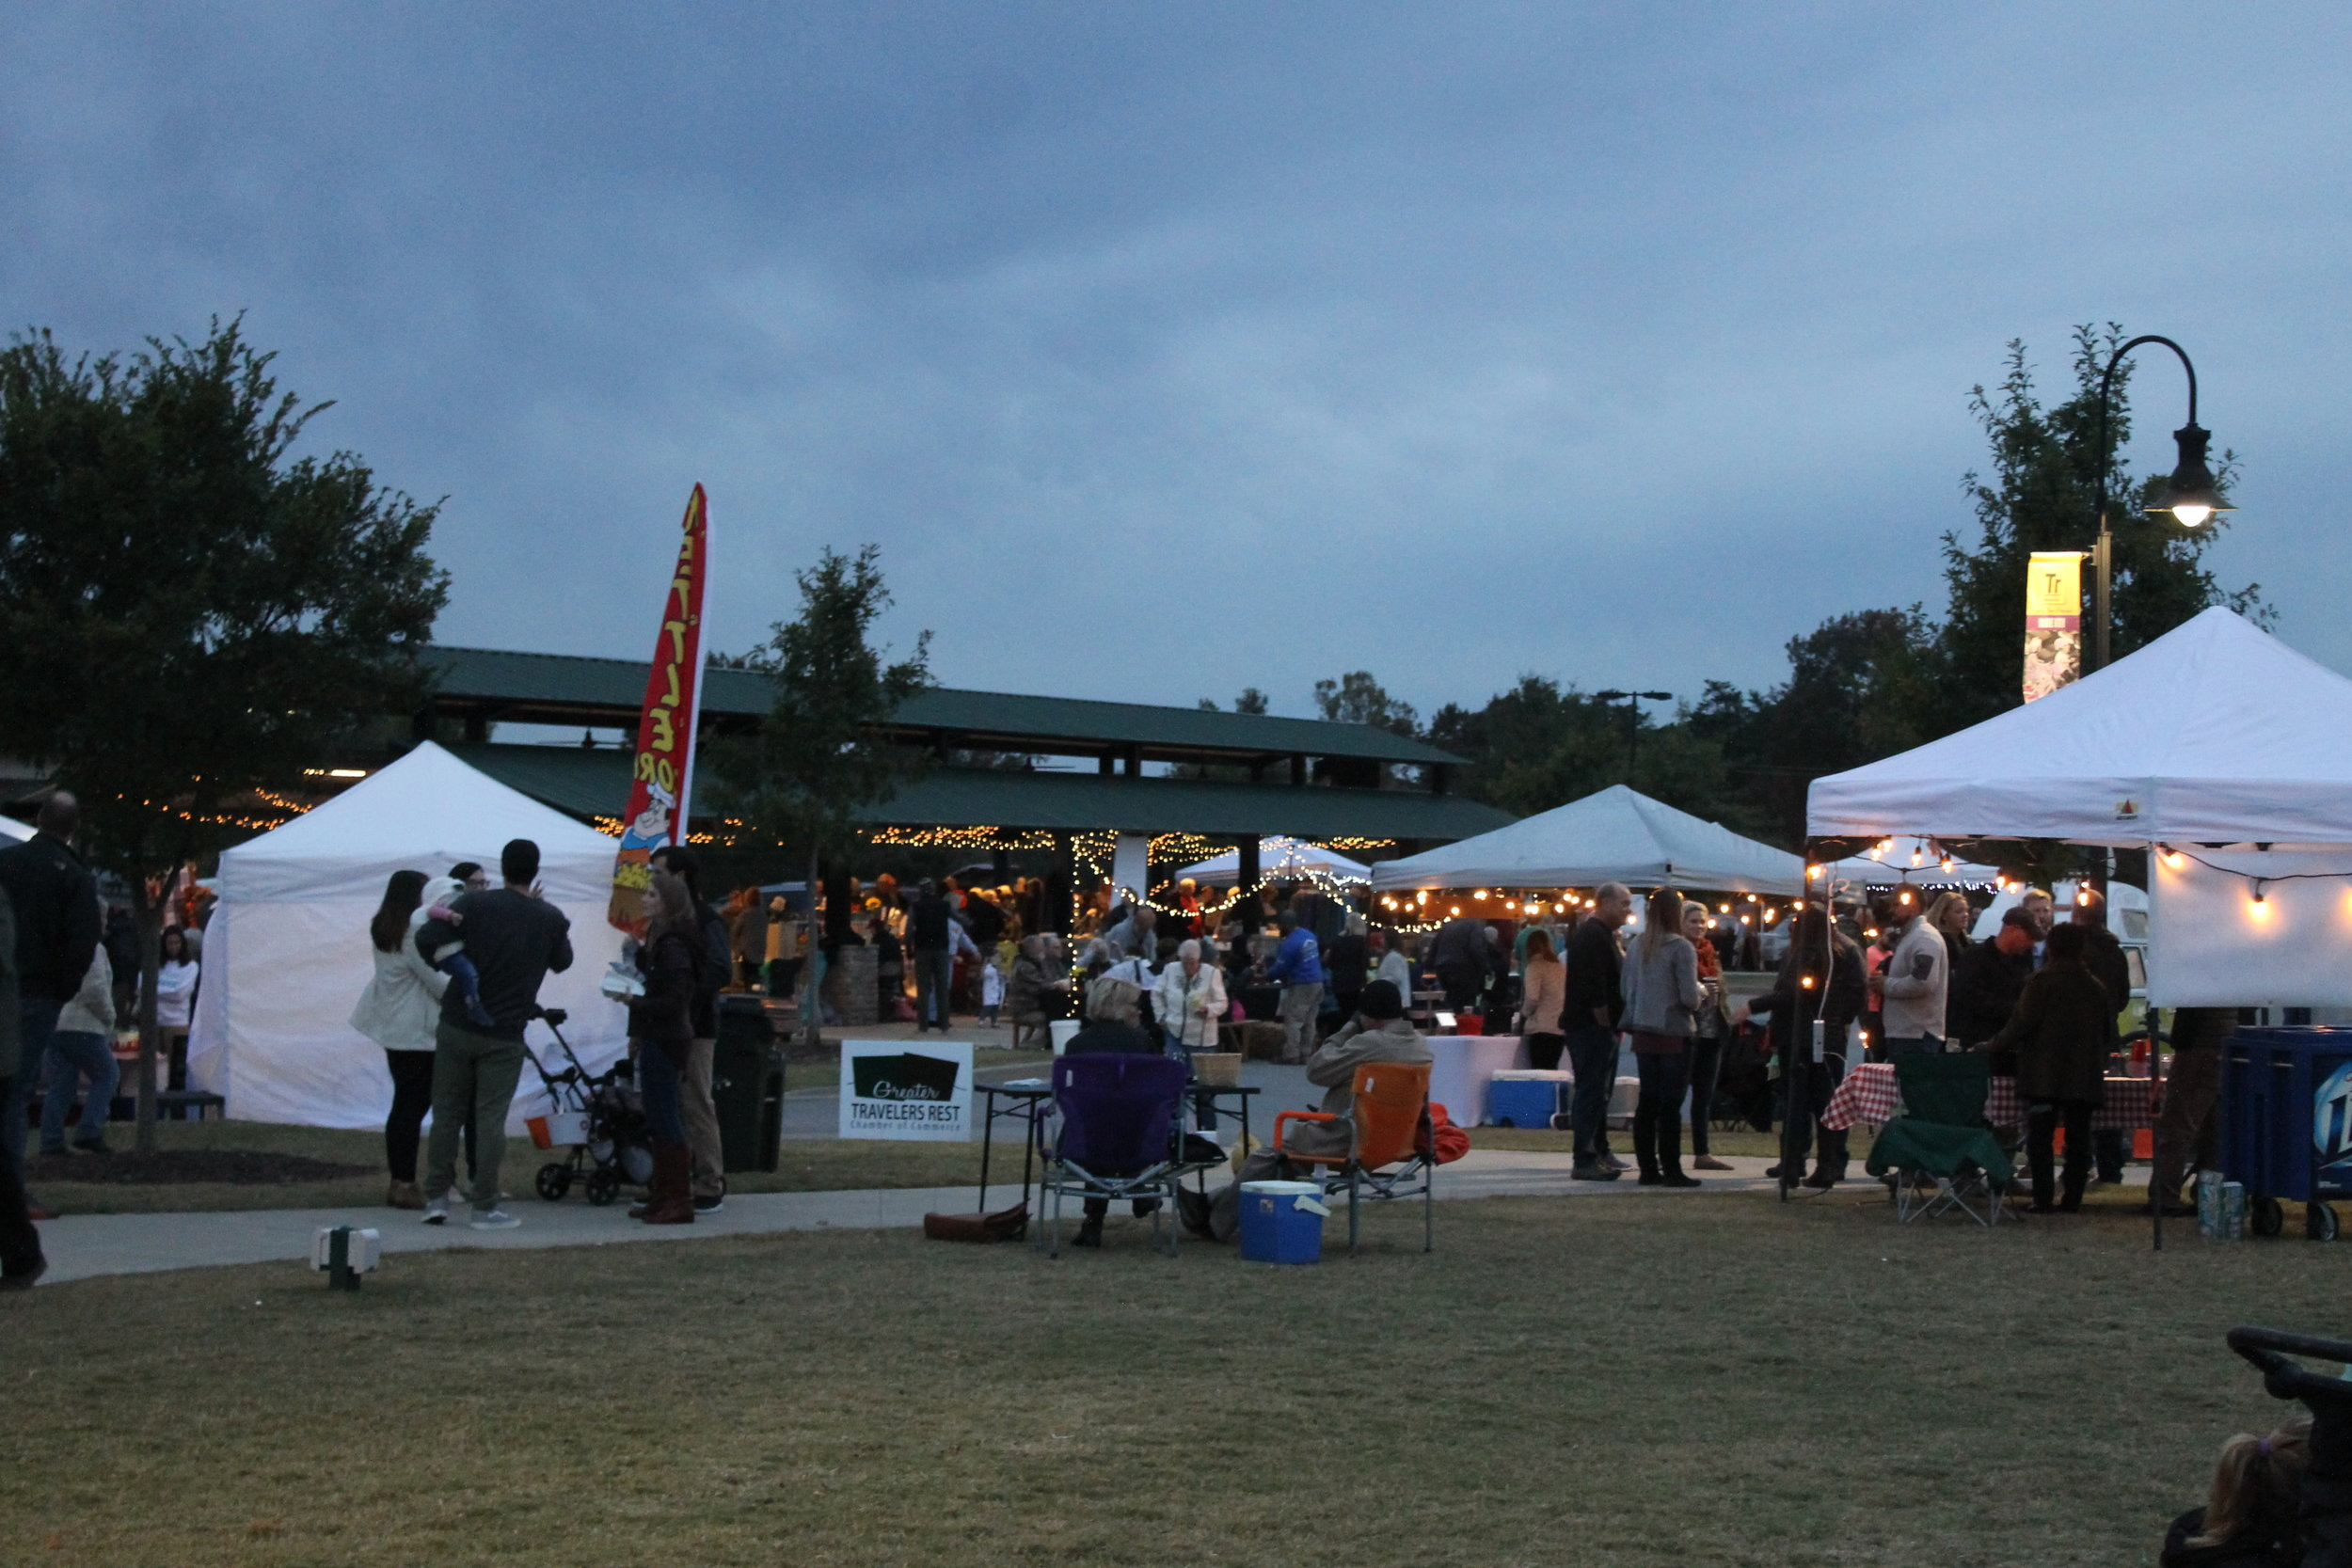 Many showed up to hear the band and all the local food and fun the market had to offer.